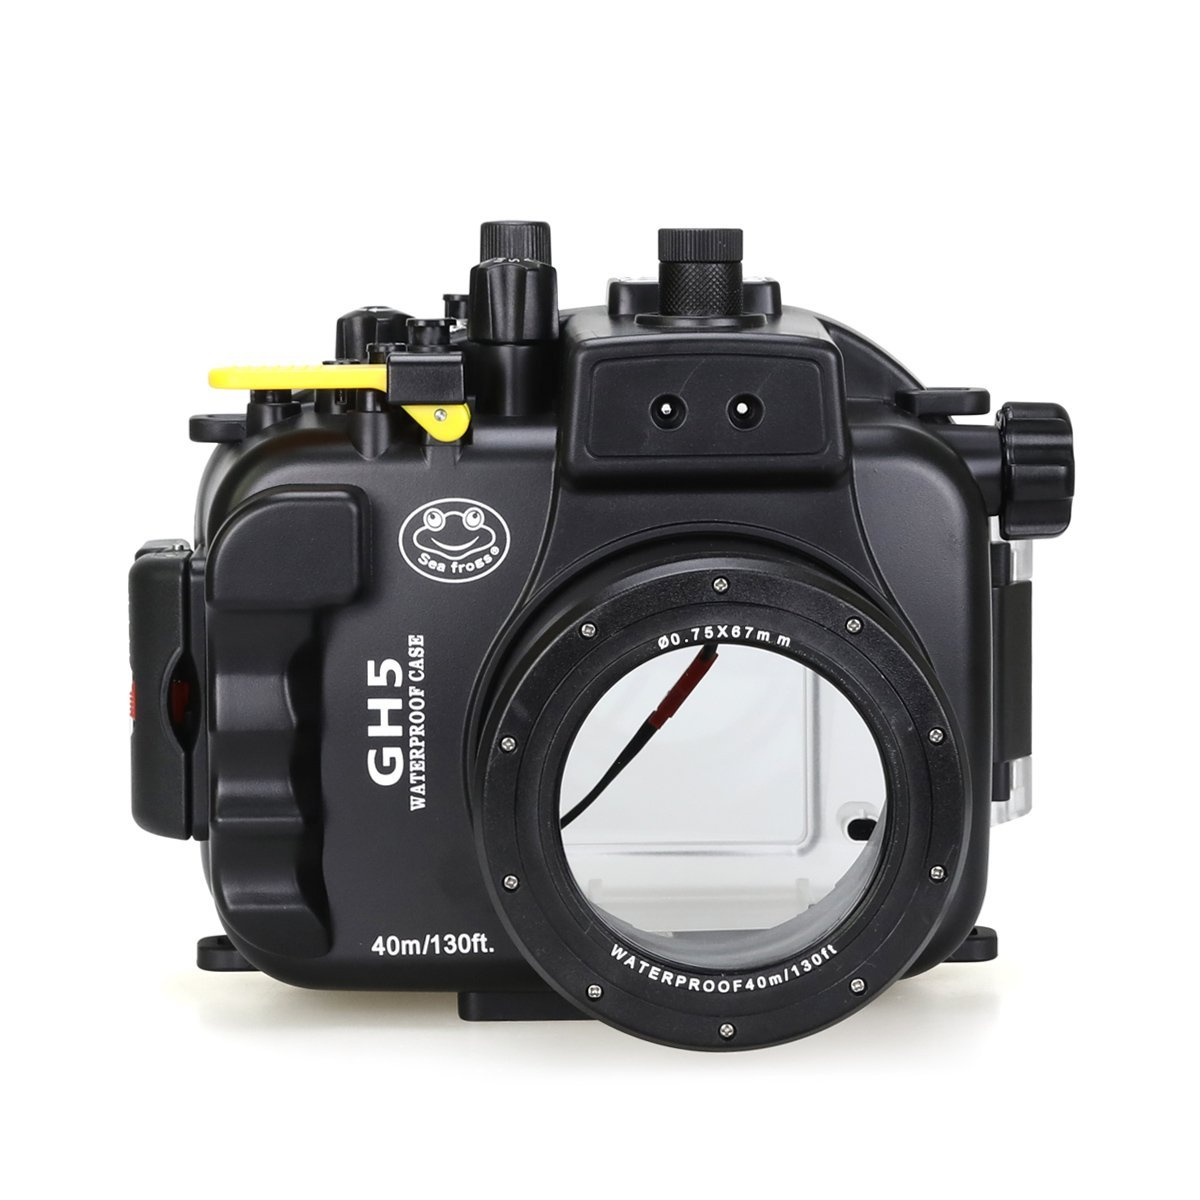 Best Underwater Settings For The Olympus Omd Em5 And E Pt Ep08 Housing Tagsolympus Camera Reviewunderwater Photography Guideolympus Em1 Review Digital Reviewolympus Mark Ii Mirrorless Micro